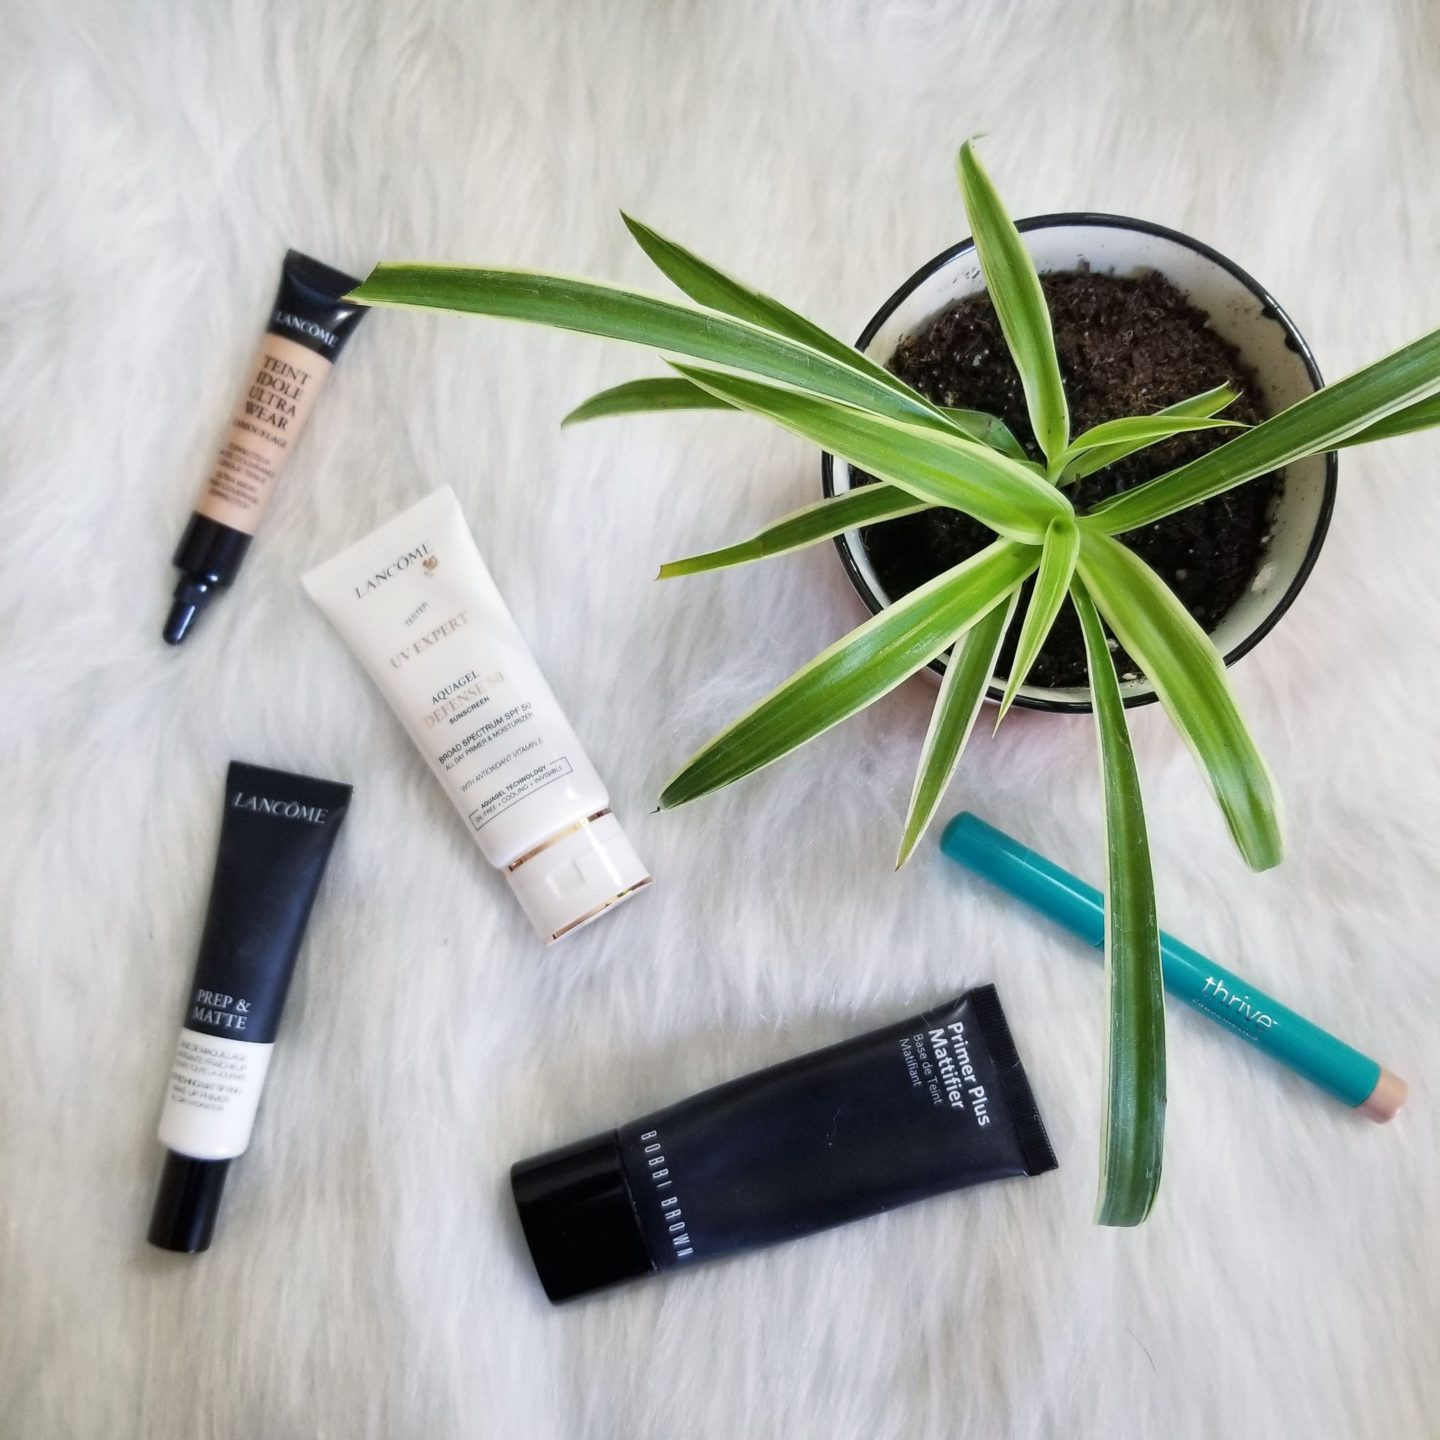 Trying Five Face Products: Reviews of  Lancôme, Bobbi Brown, and Thrive Causemetics Makeup